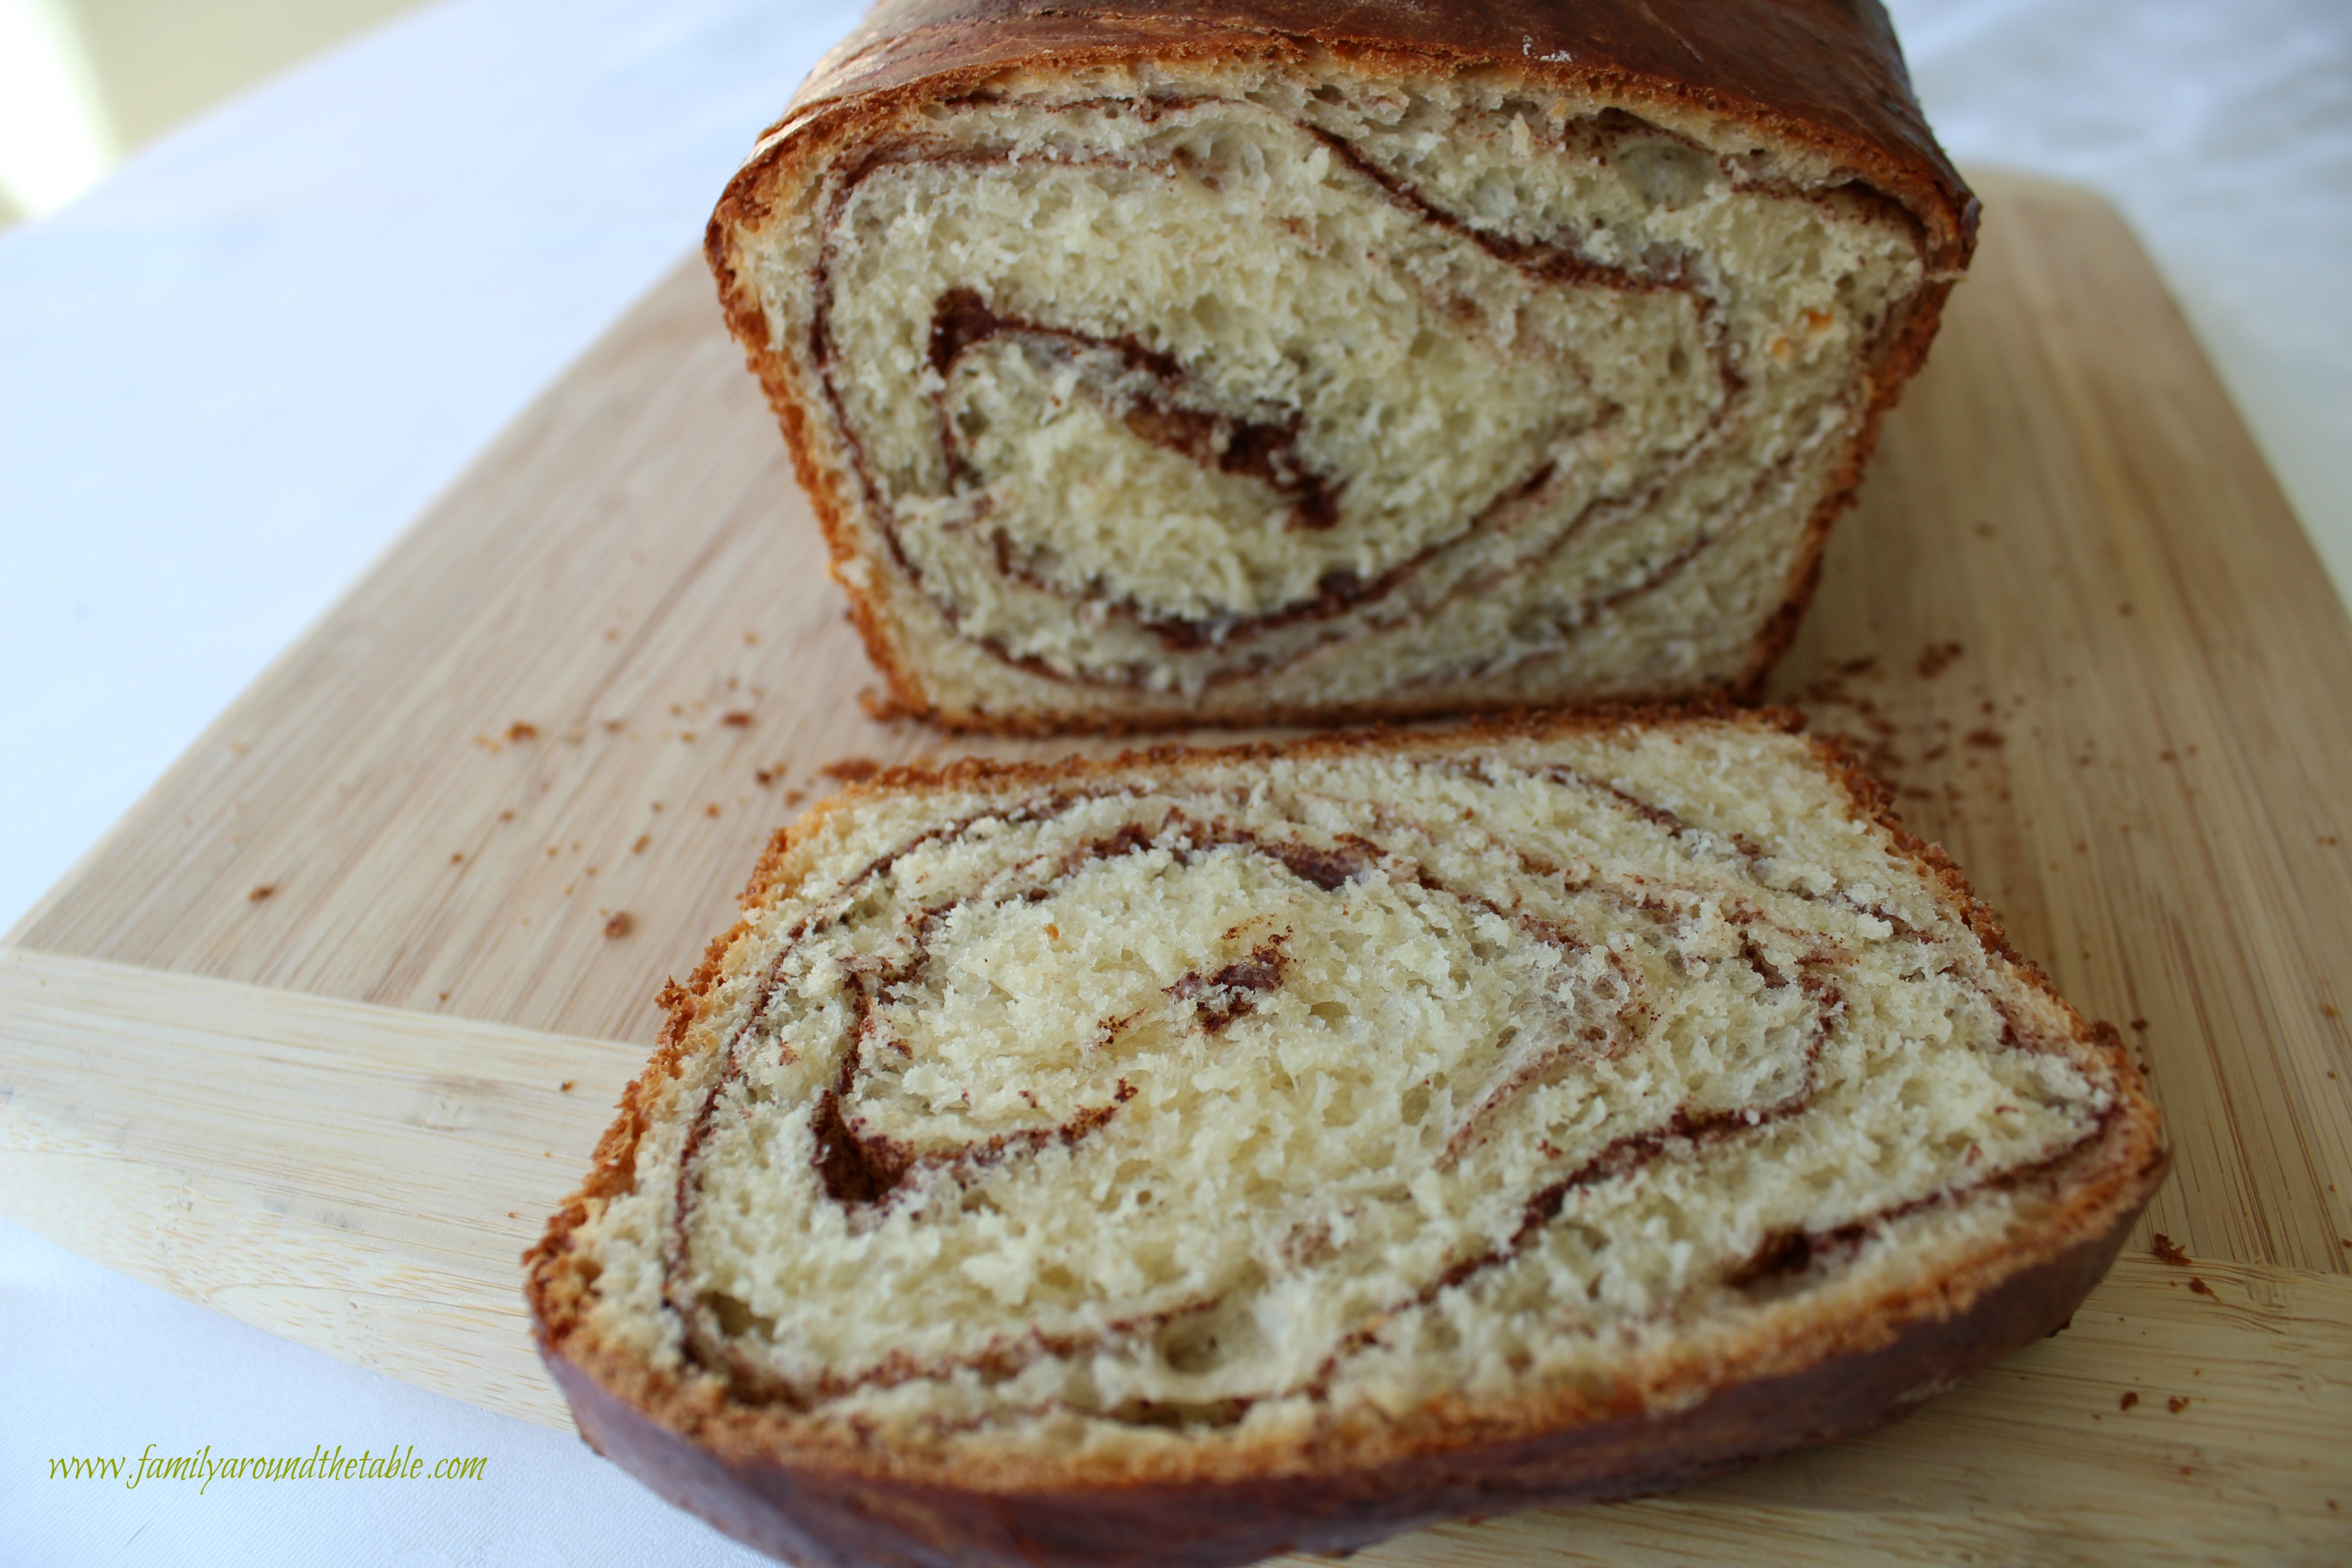 Homemade cinnamon swirl bread is so much better than store bought.